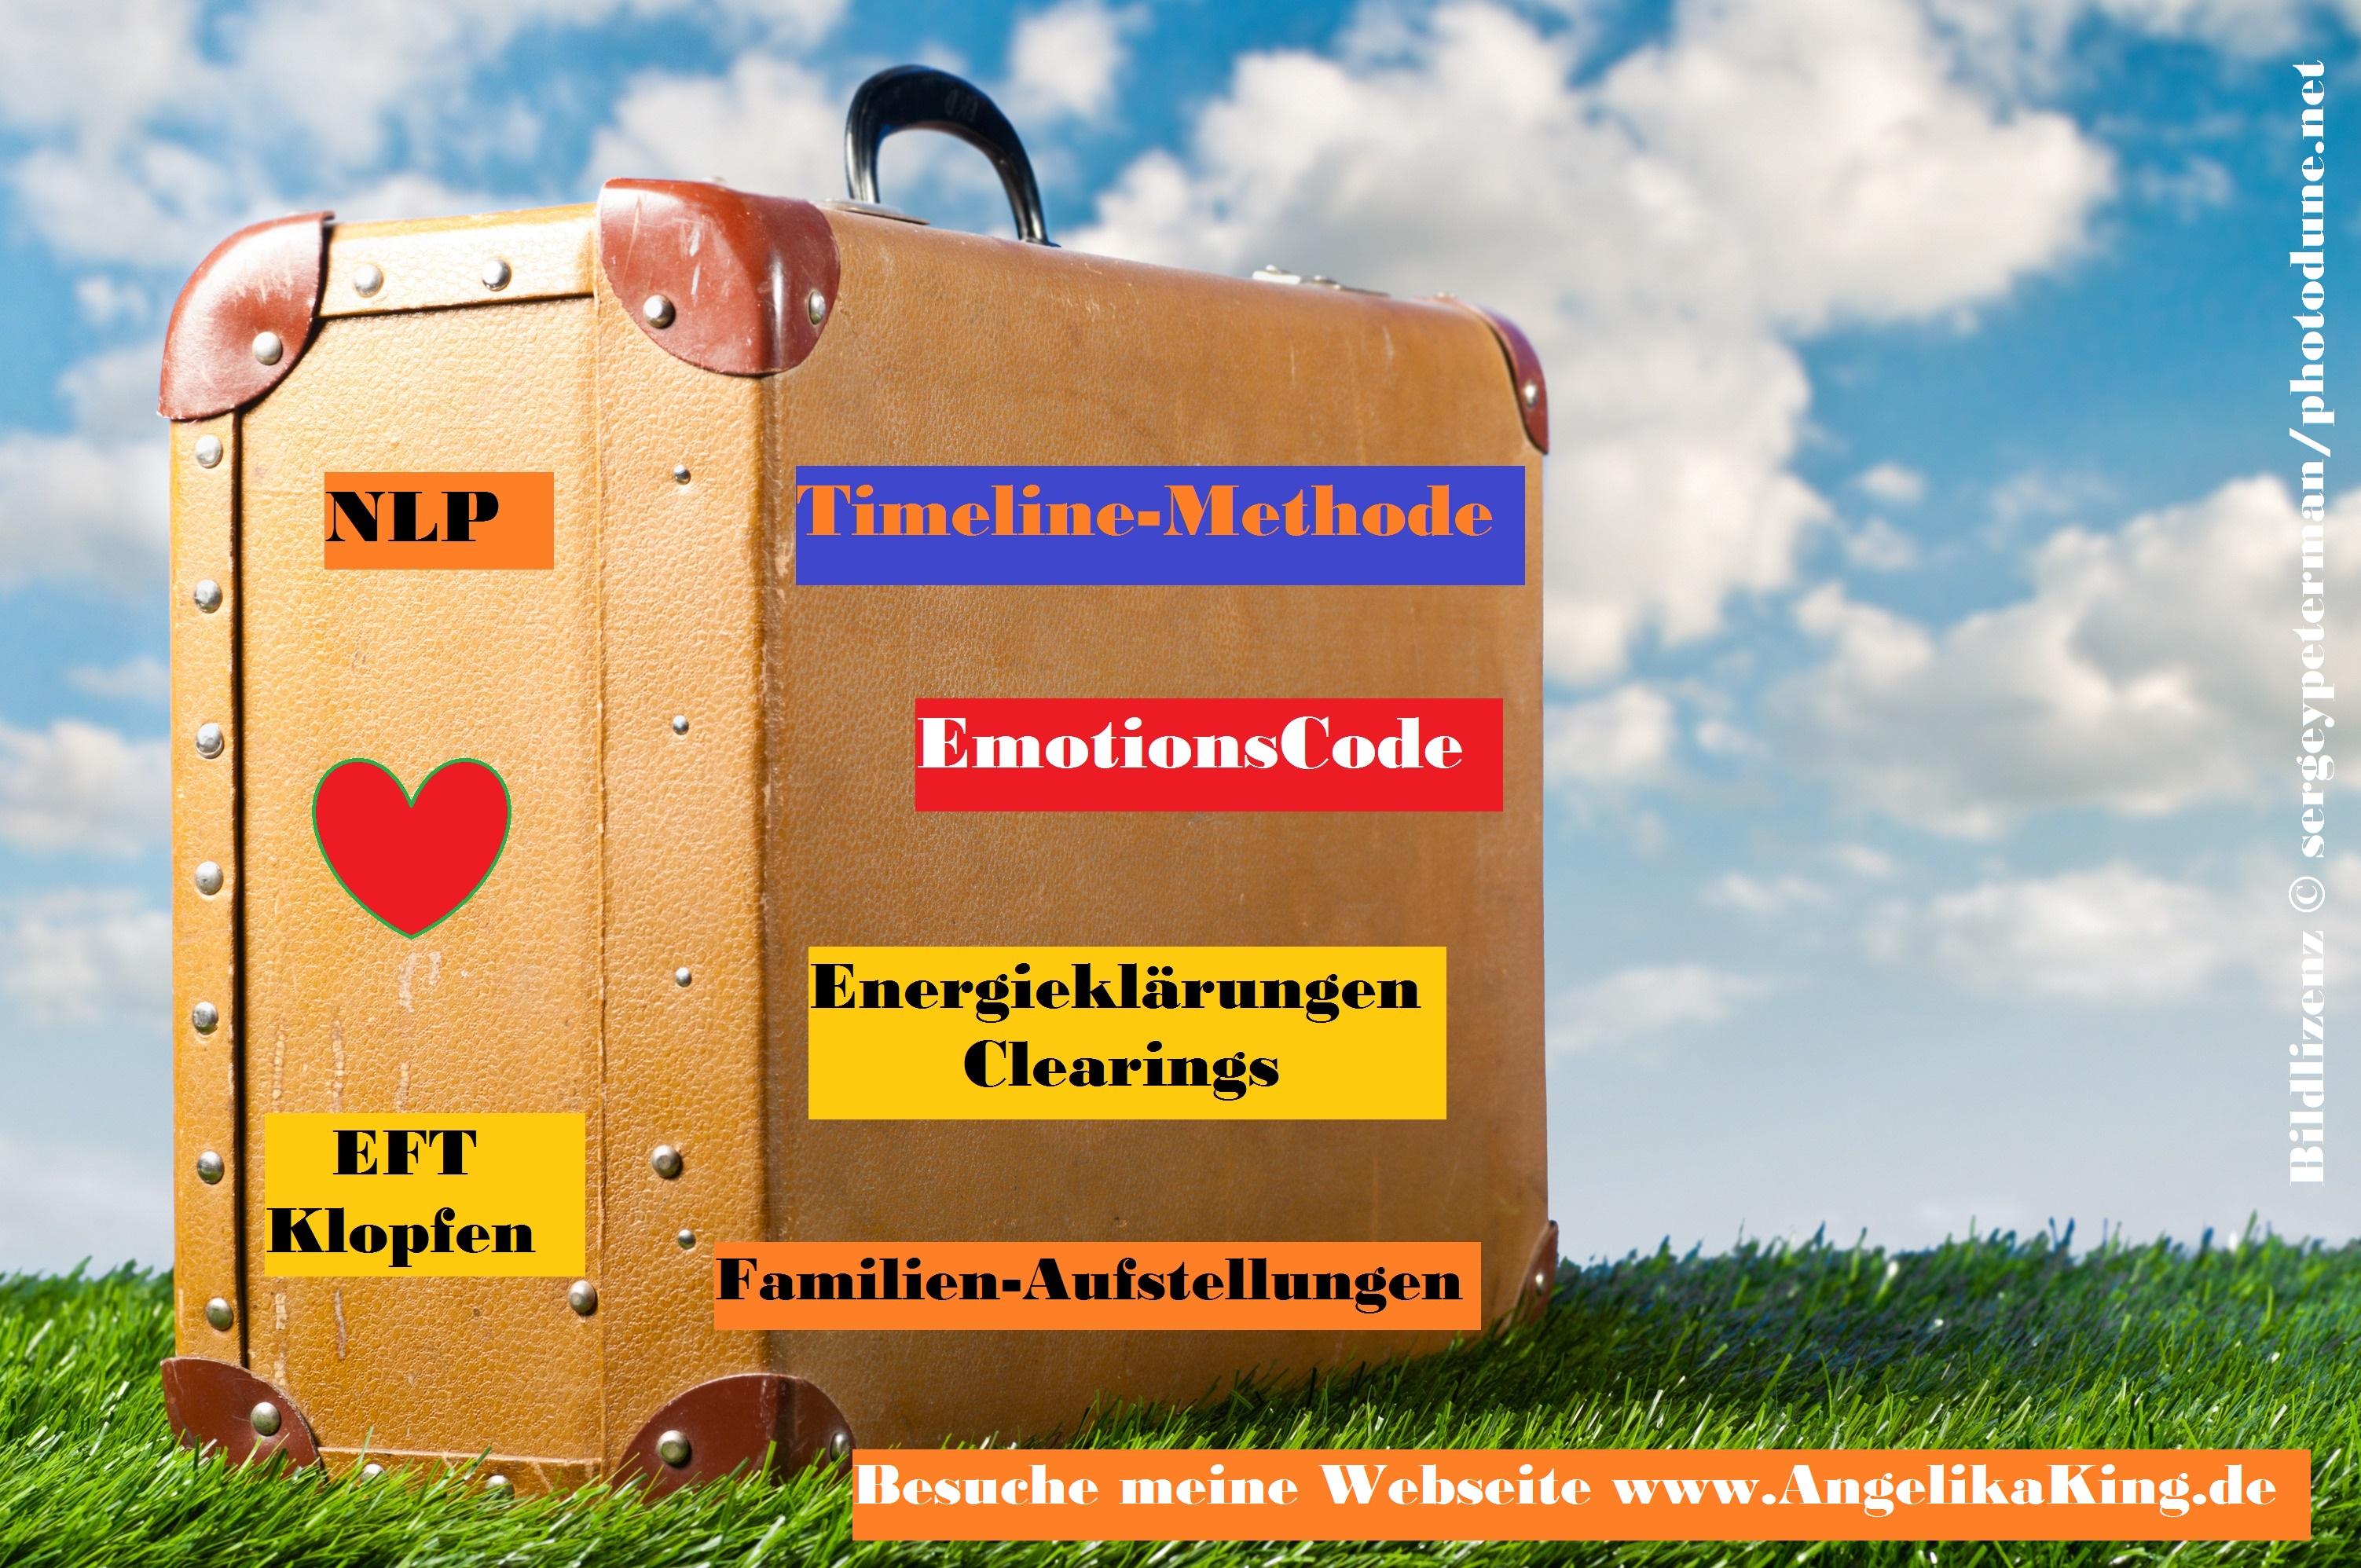 Turbo-Coaching, Timeline-Seminare, Selbstcoaching-Kurse und mehr